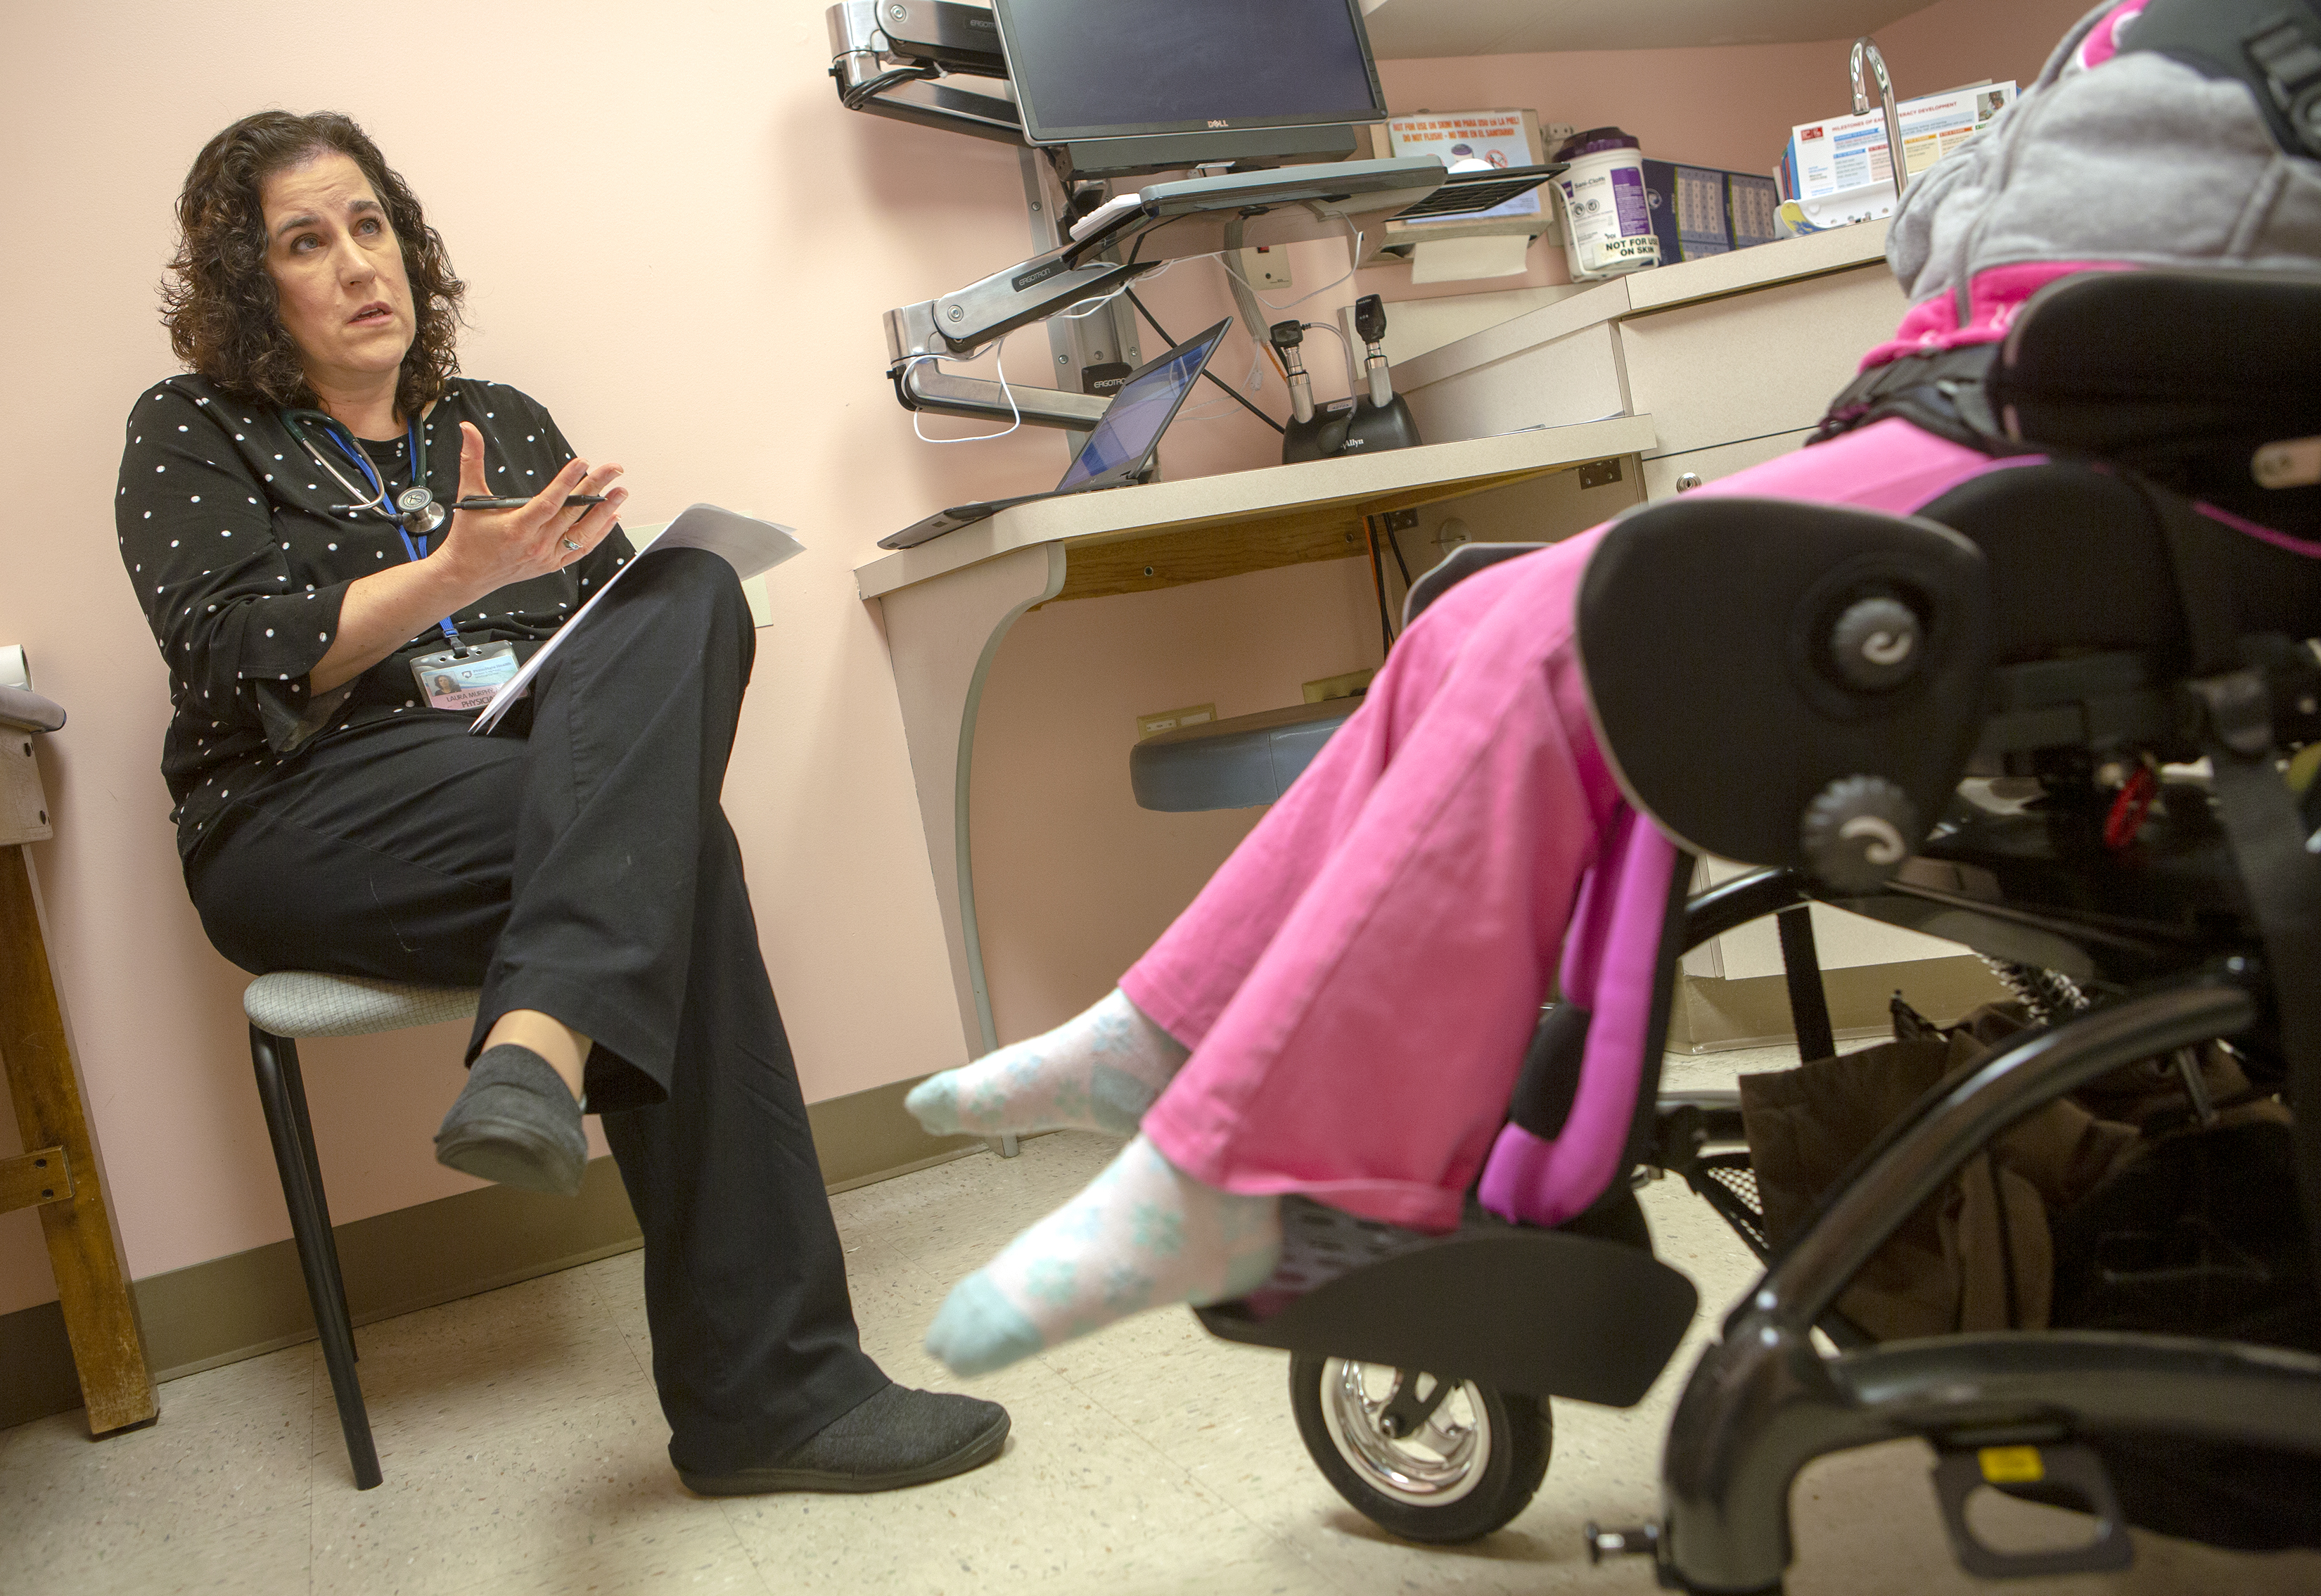 Dr. Laura Murphy is seated in a chair in an exam room and holds a pen in her hand and gestures as she talks with her patient, Basudha Rizal, 8, who is seated in a wheelchair. The wheelchair and Basudha's pants and socked feet are visible. Murphy has shoulder-length wavy hair and wears a polka dotted shirt and pants. A computer screen atop a small desk and a counter with sink are in the background.